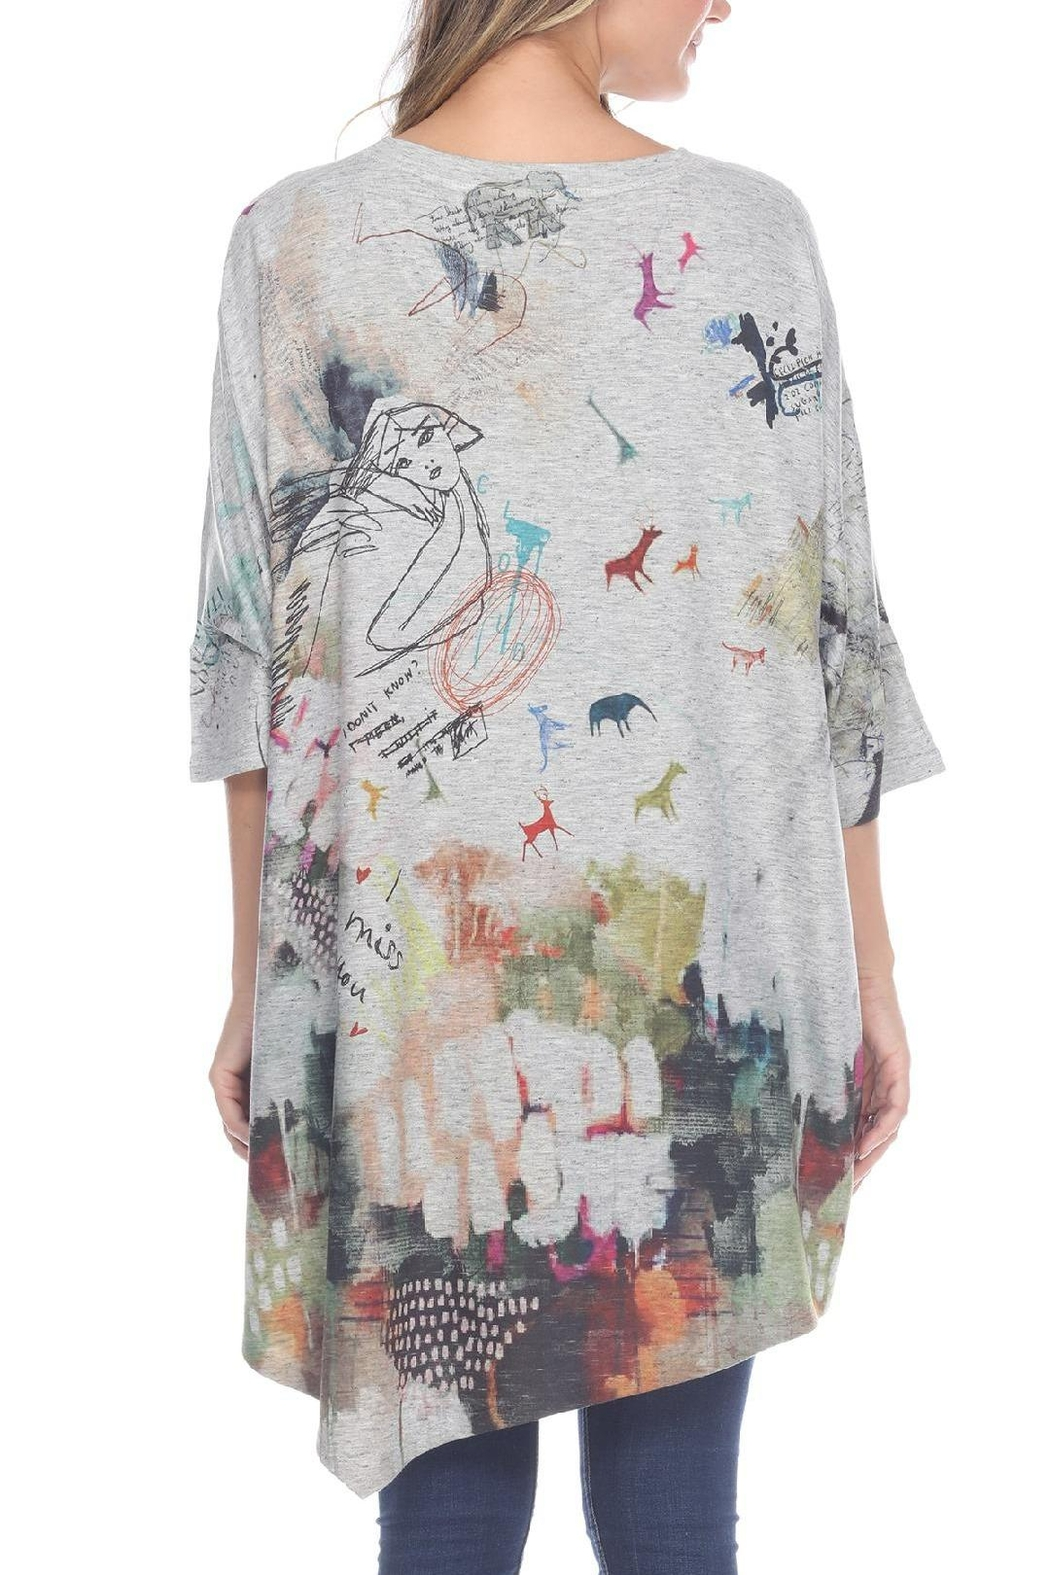 Inoah Asymmetrical One-Size Top - Front Full Image